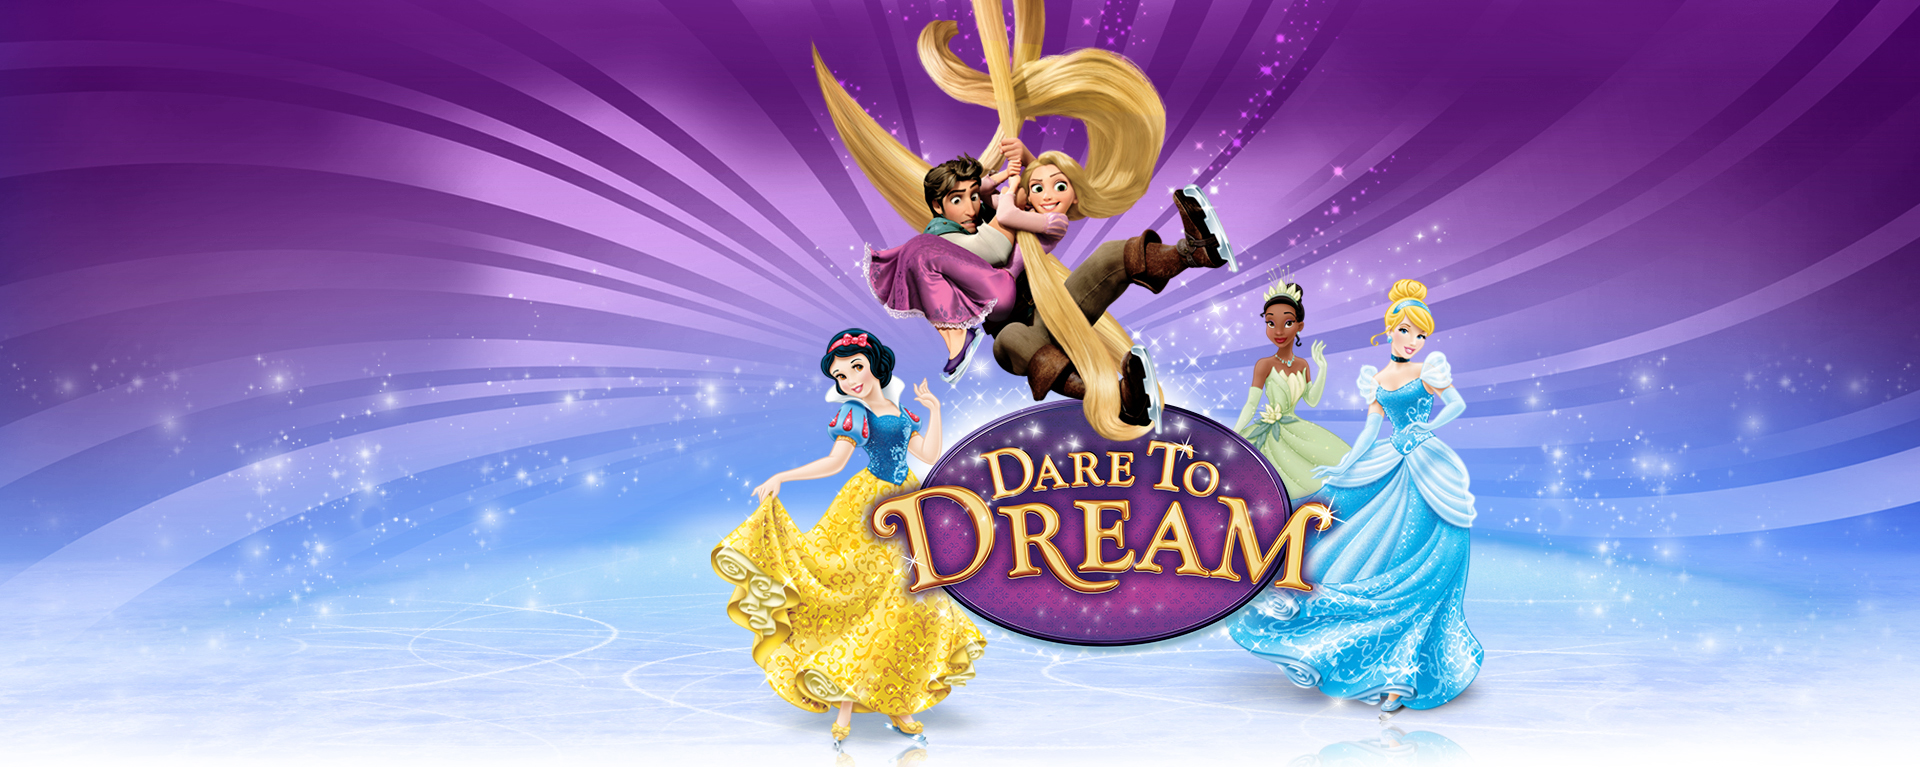 http://www.disneyonice.com/images/uploads/D32_DOI.COM_1920x767_final.jpg